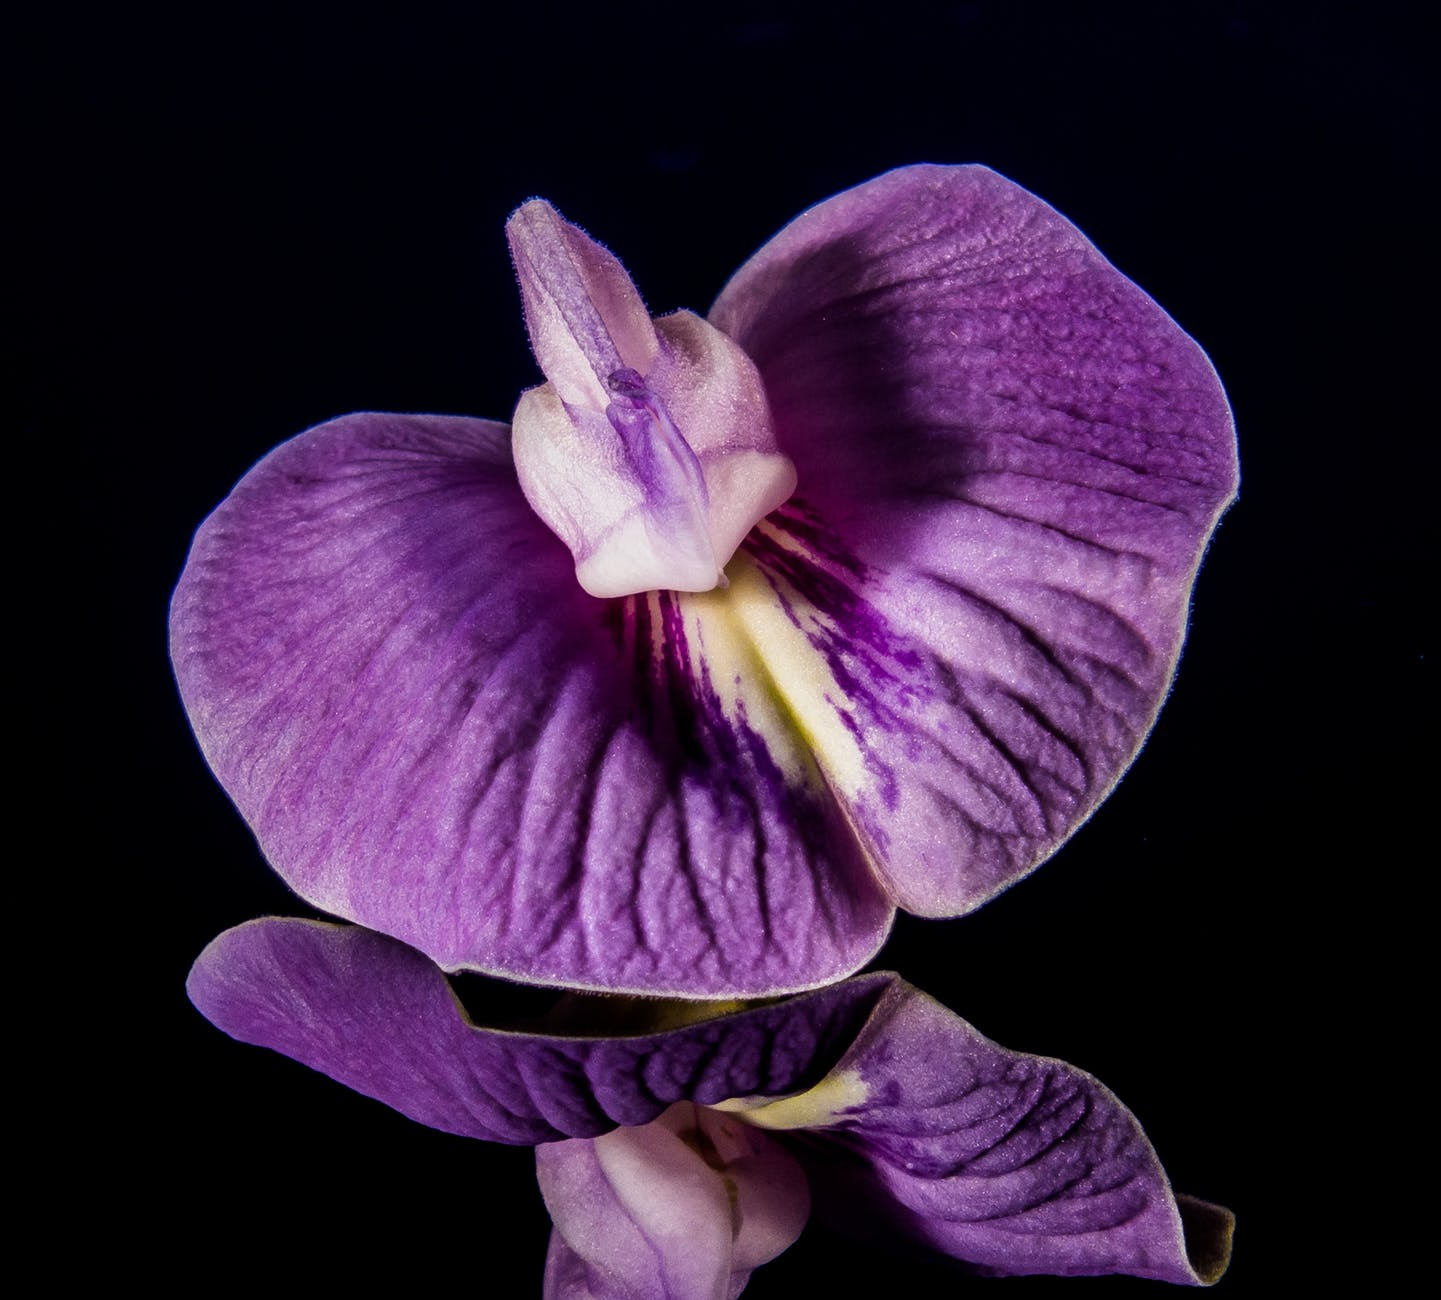 purple and white orchid in shallow focus lens